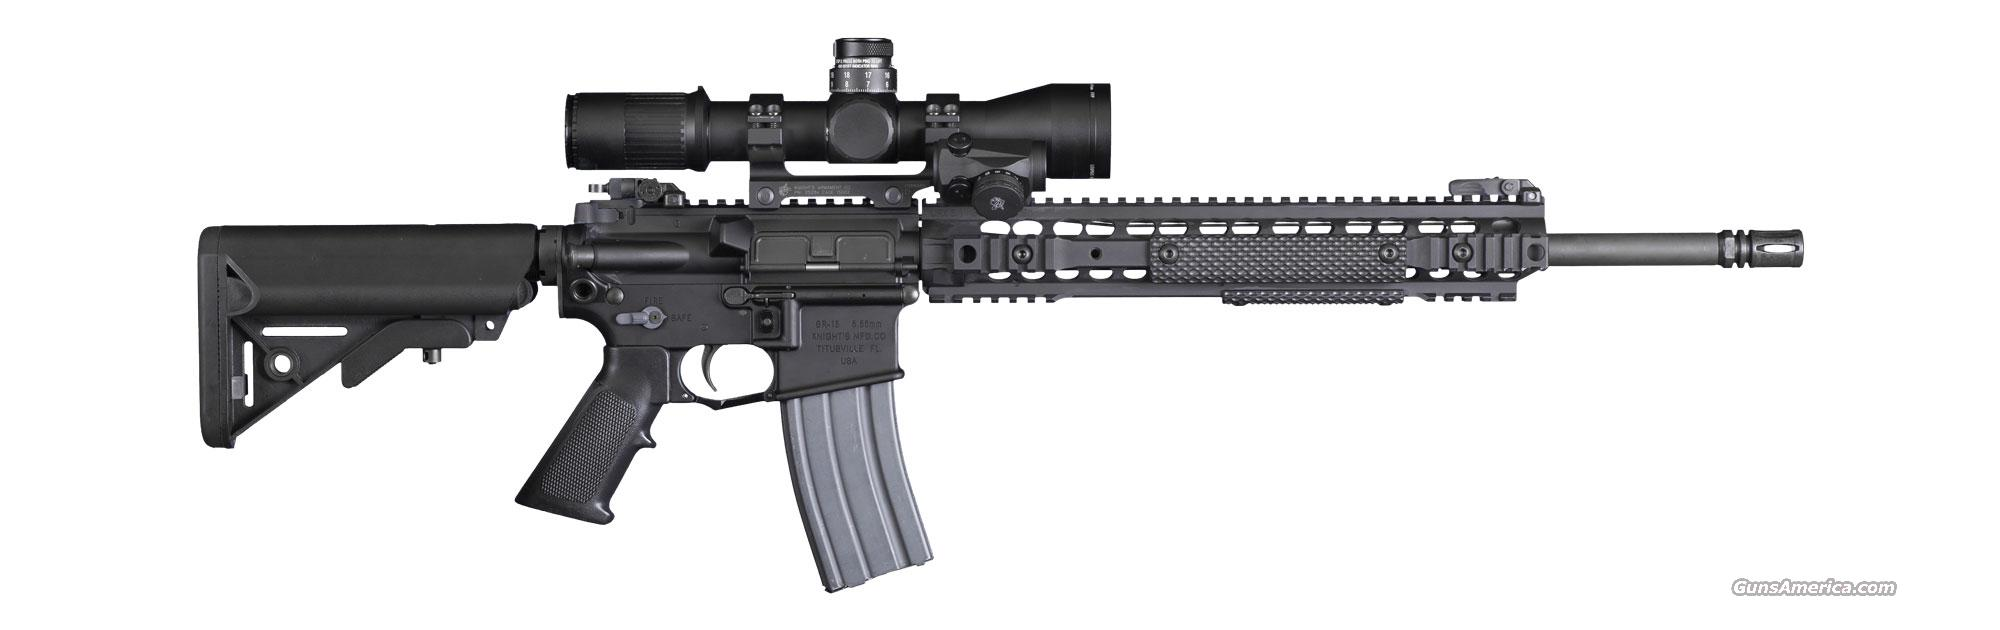 Knights Armament KAC SR-15 LPR (30280)  Guns > Rifles > Knight's Manufacturing Rifles